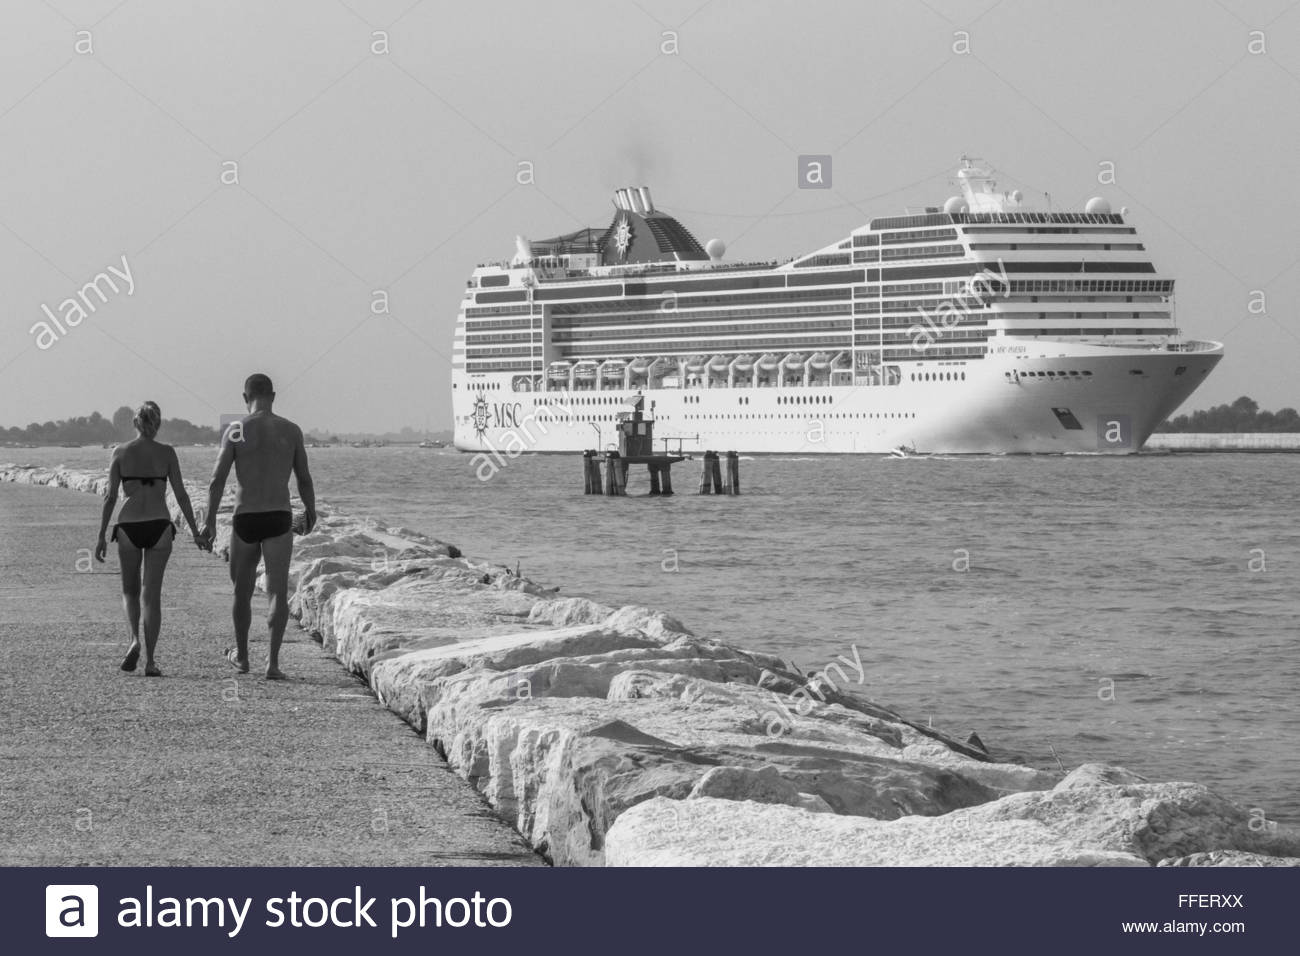 VENICE, ITALY -  15 AUGUST 2015:  Monochrome image of couple walking hand-in-hand along a headland with a cruise - Stock Image